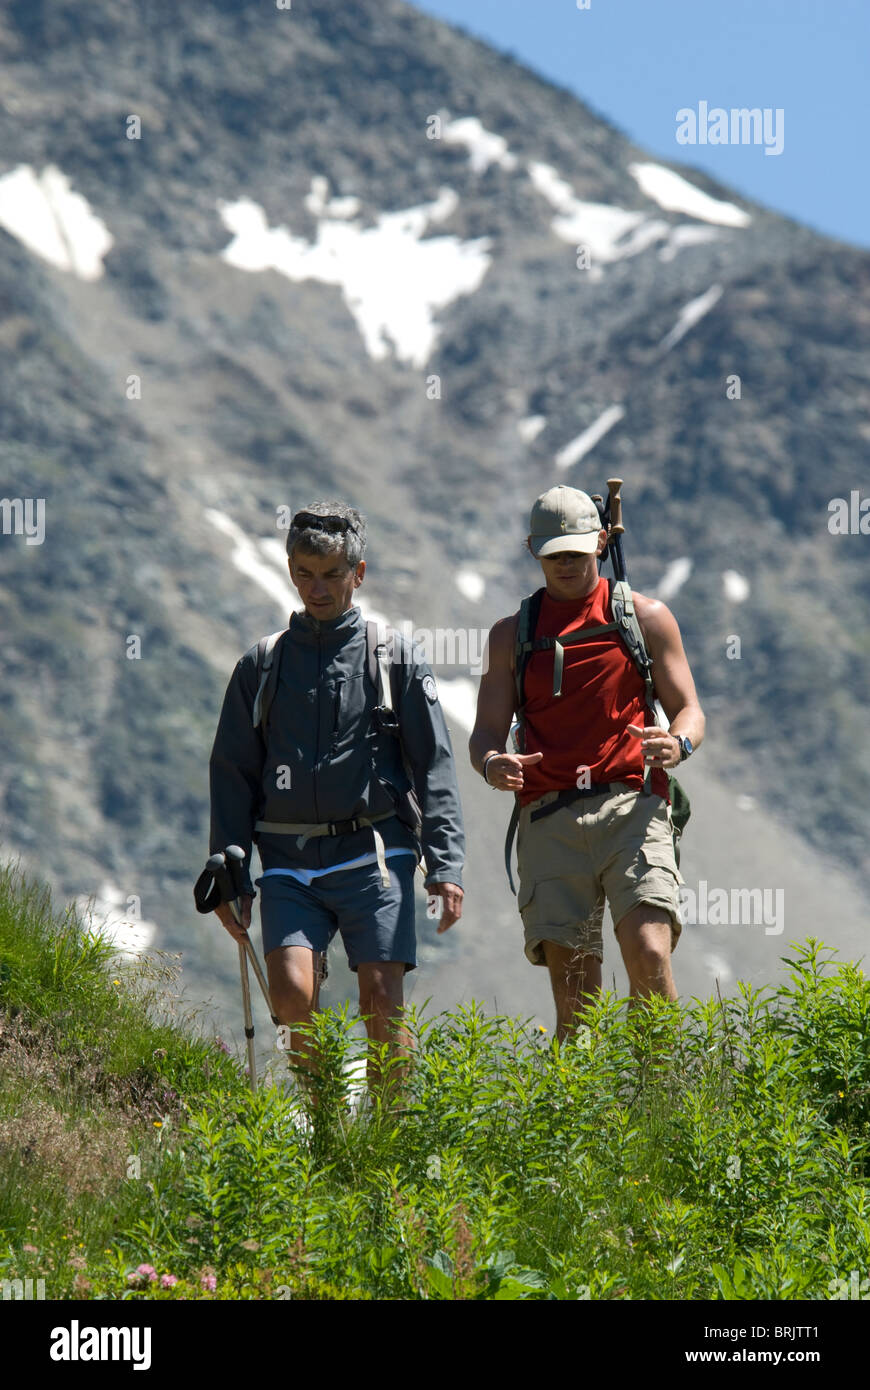 Two mountain guides discuss the upcoming schedule for a group of hikers in the Frnech Alps. - Stock Image